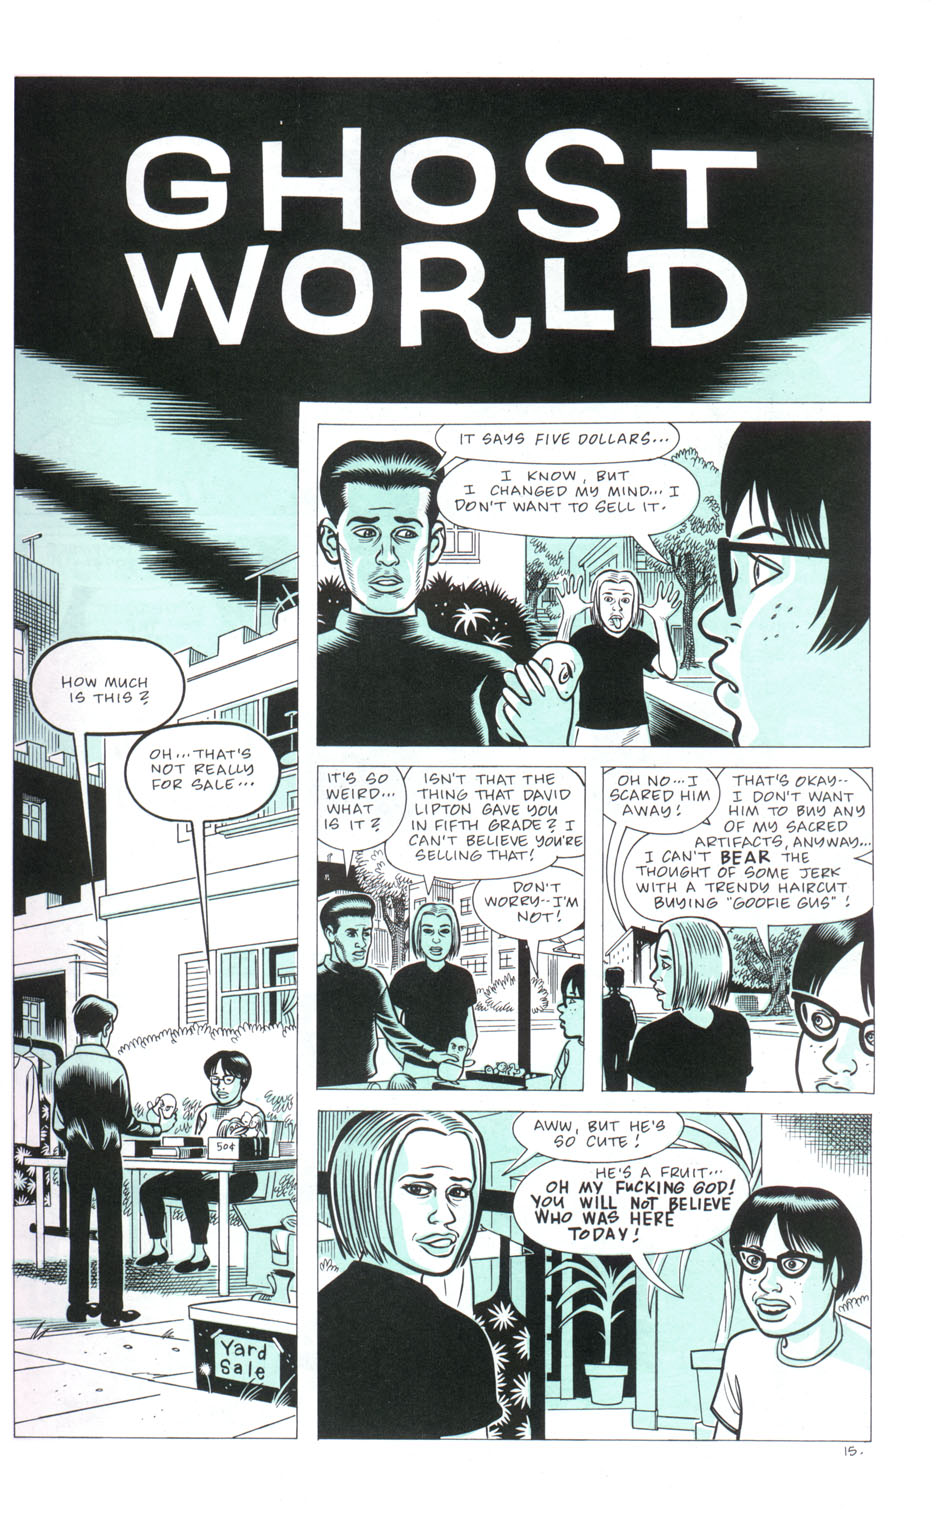 essay on ghost world Introduction notes on the collection daniel clowes on    an aesthetic biography of daniel clowes an introduction to the daniel clowes reader25 section i: ghost world, girls, and adolescence.